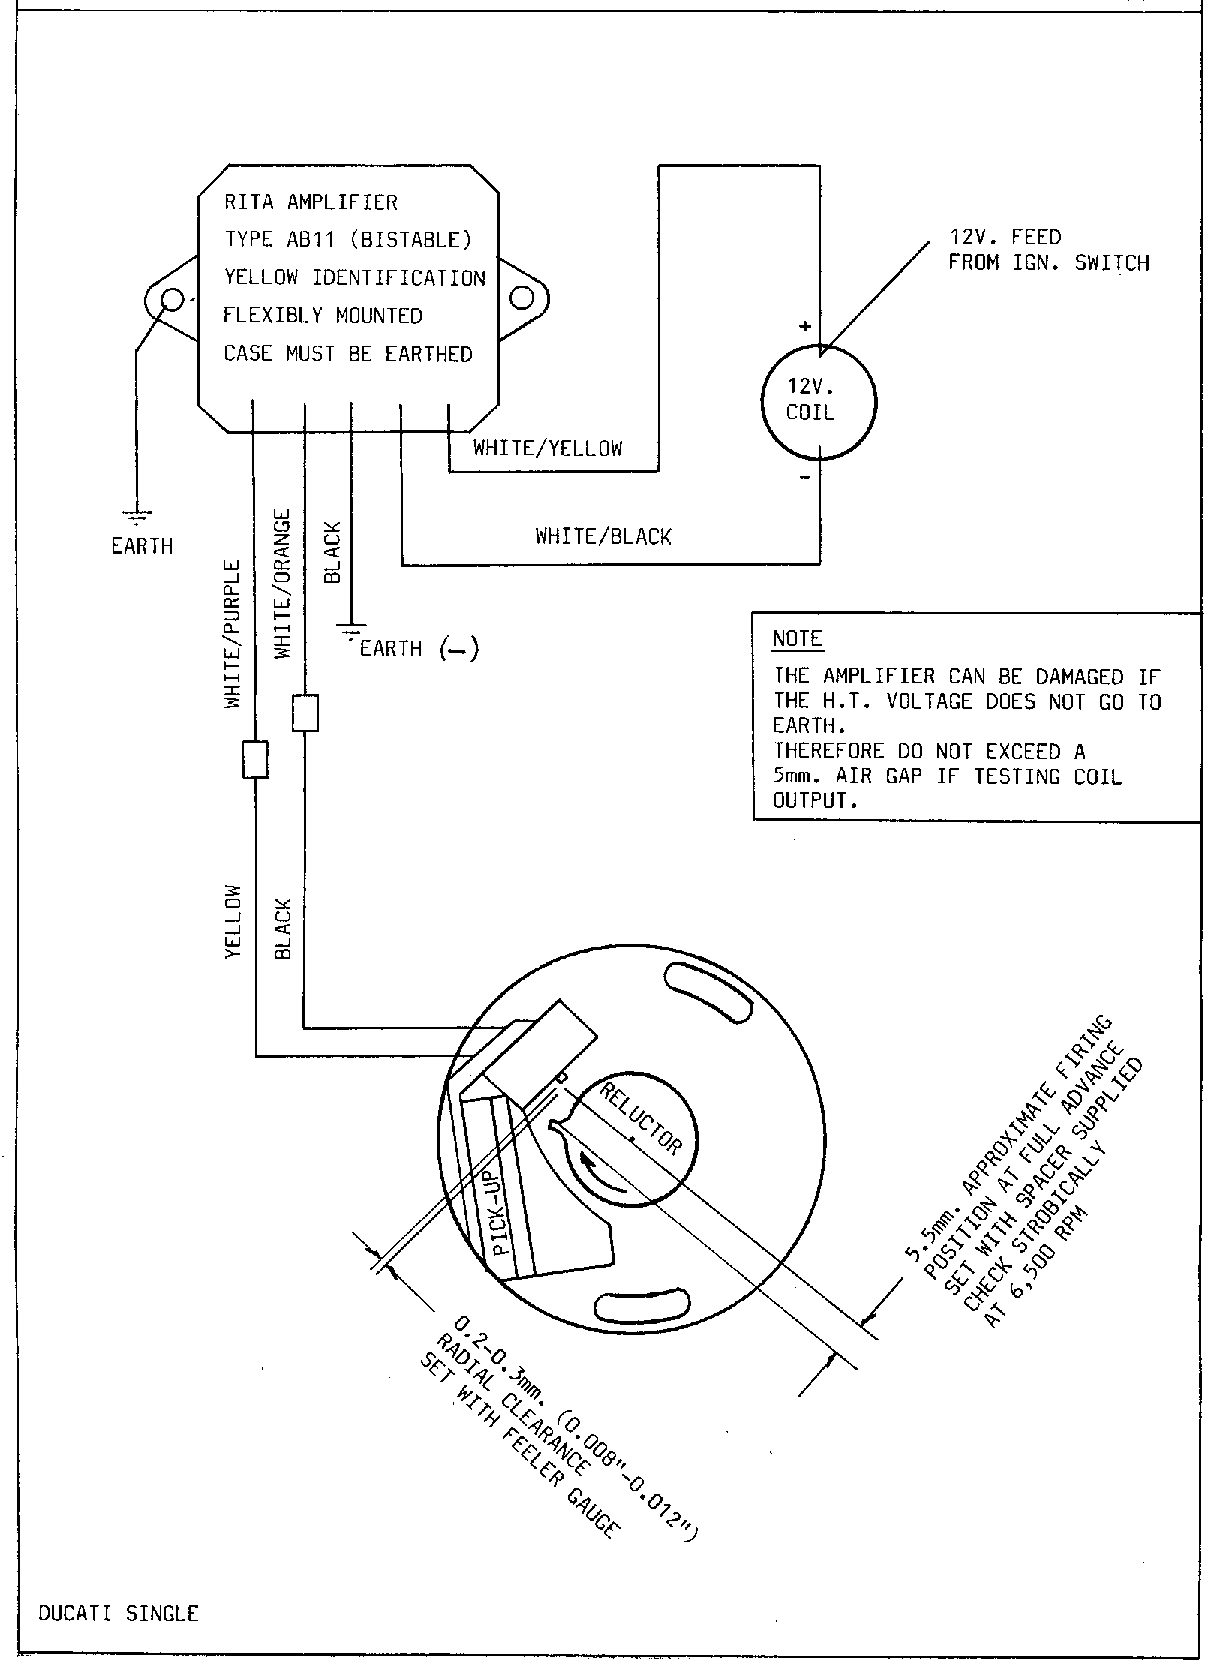 Ignition Coil Wiring Diagram Http Yamahaxs650com Installationhtm